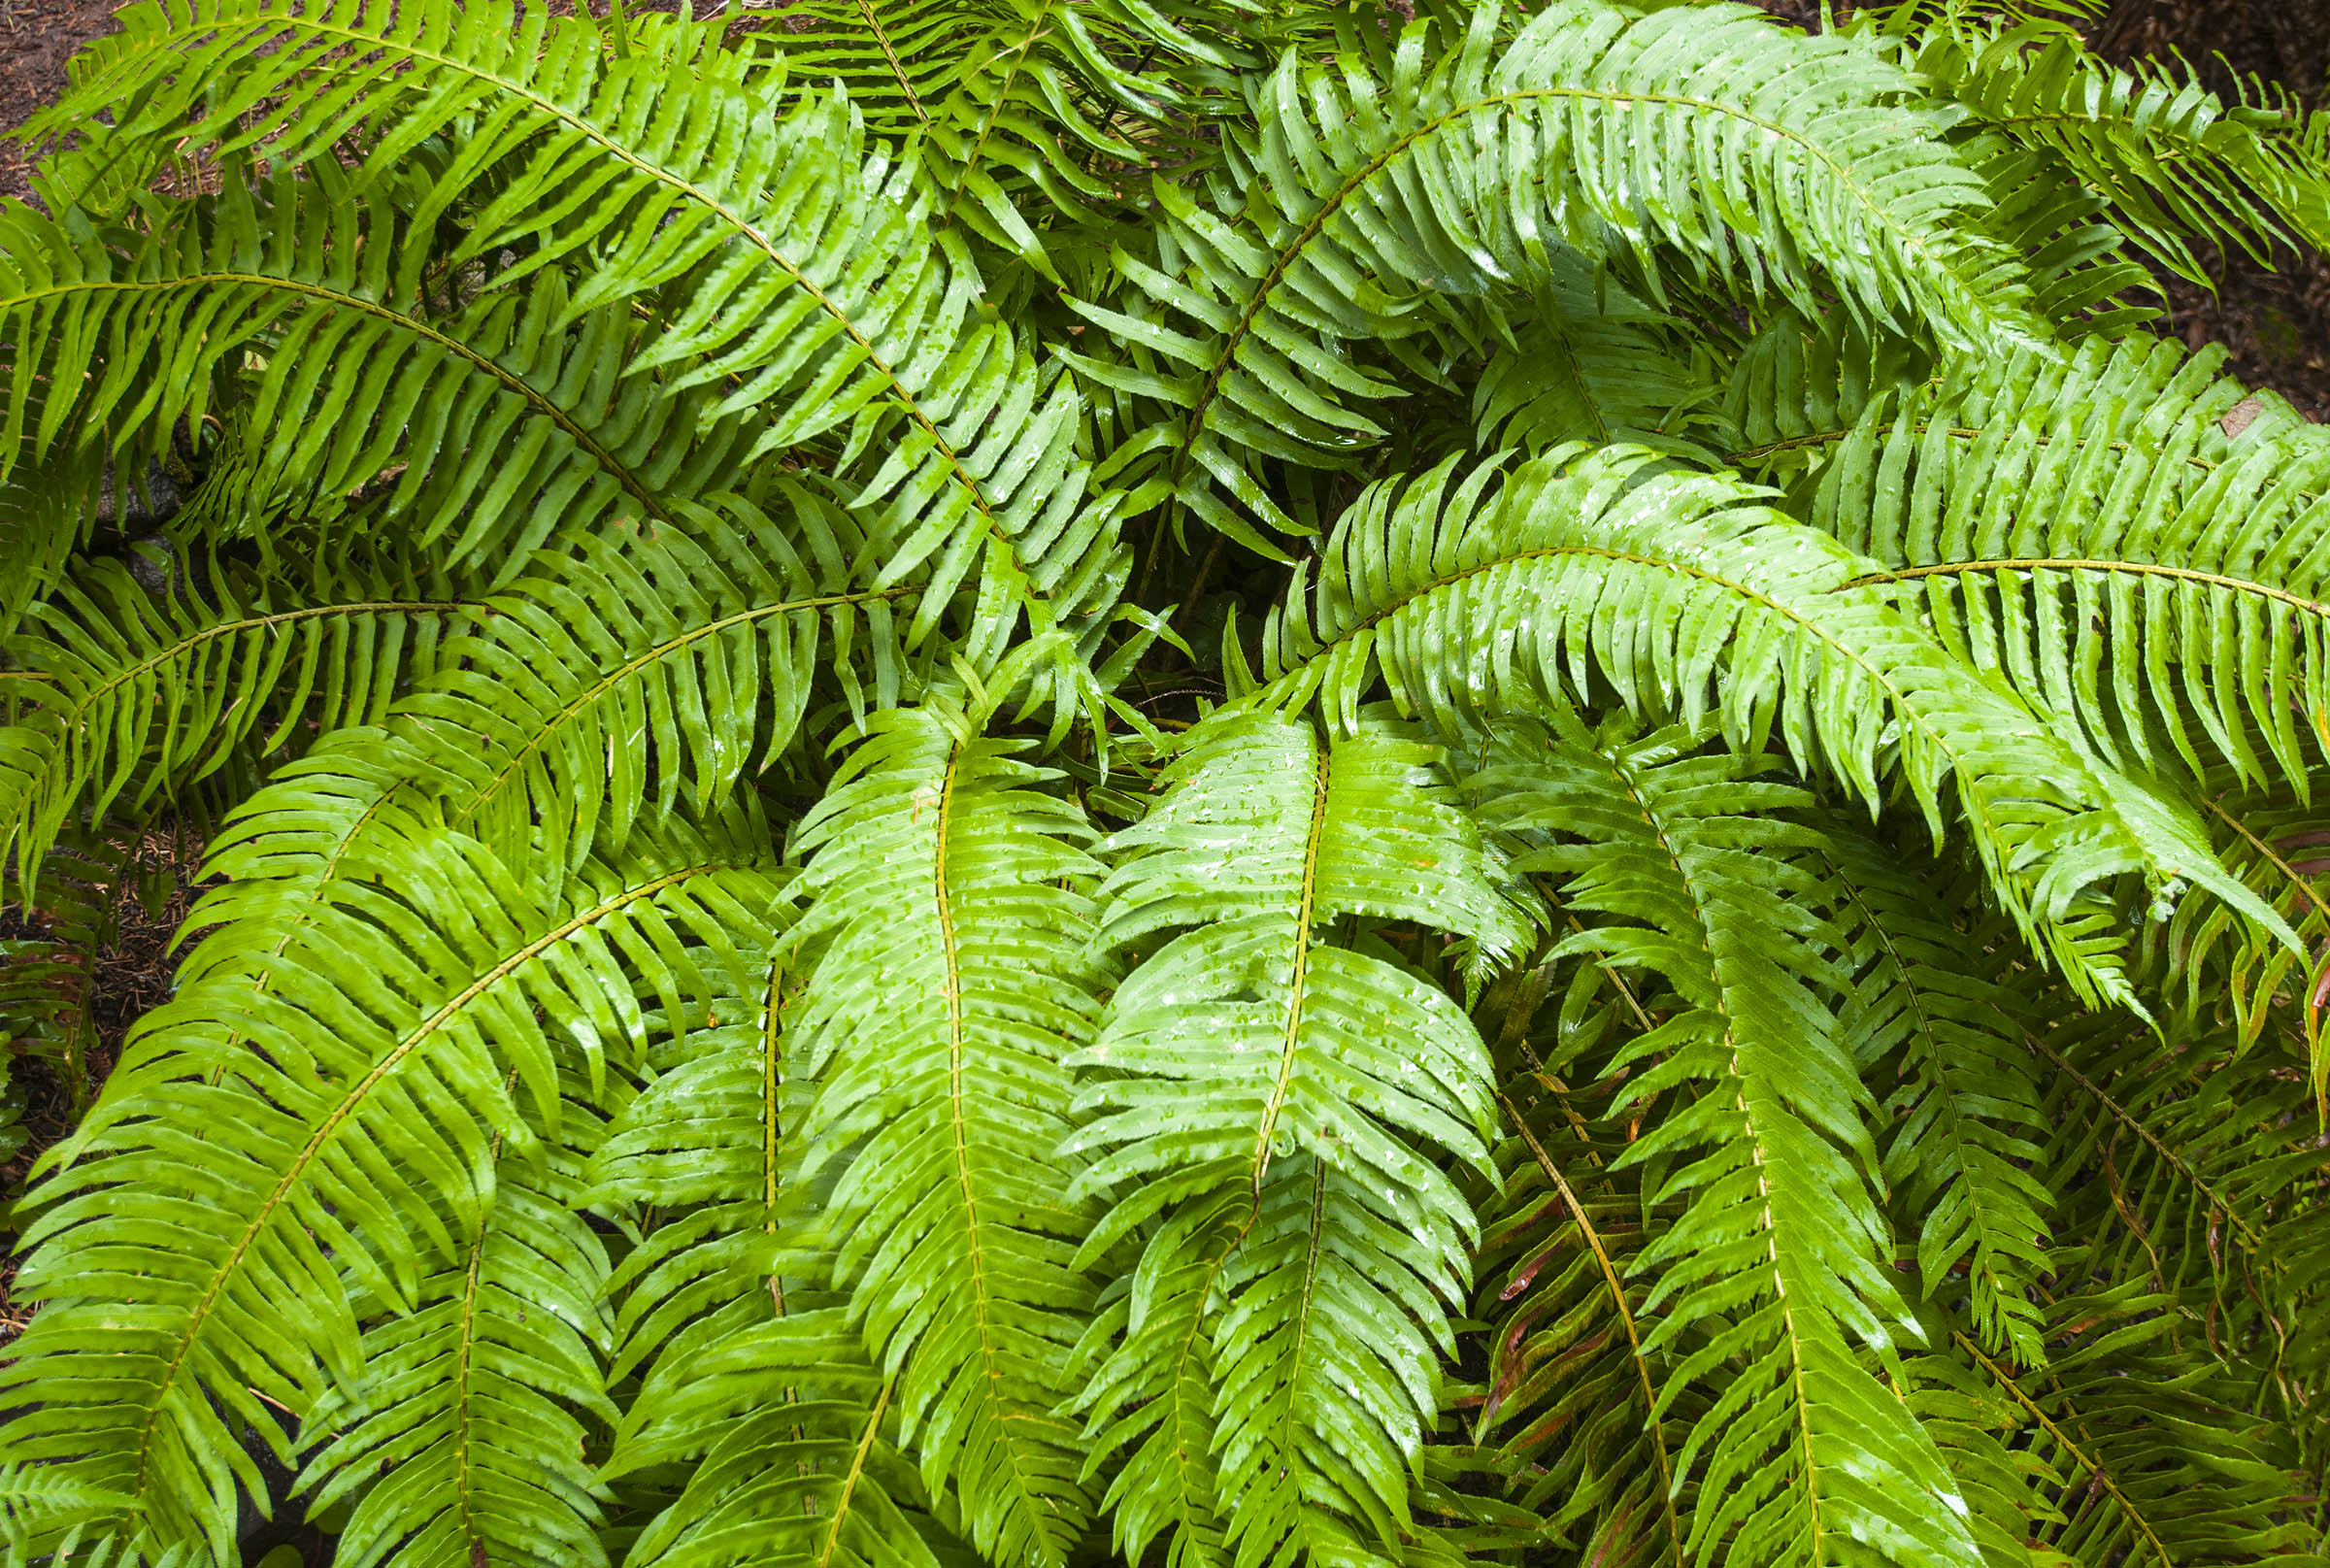 The Redwood Section covers the coastal redwood forests south of Humboldt County. In the understory of the redwood grove one can see lush ferns, ground covering sorrel and other beautiful plants.